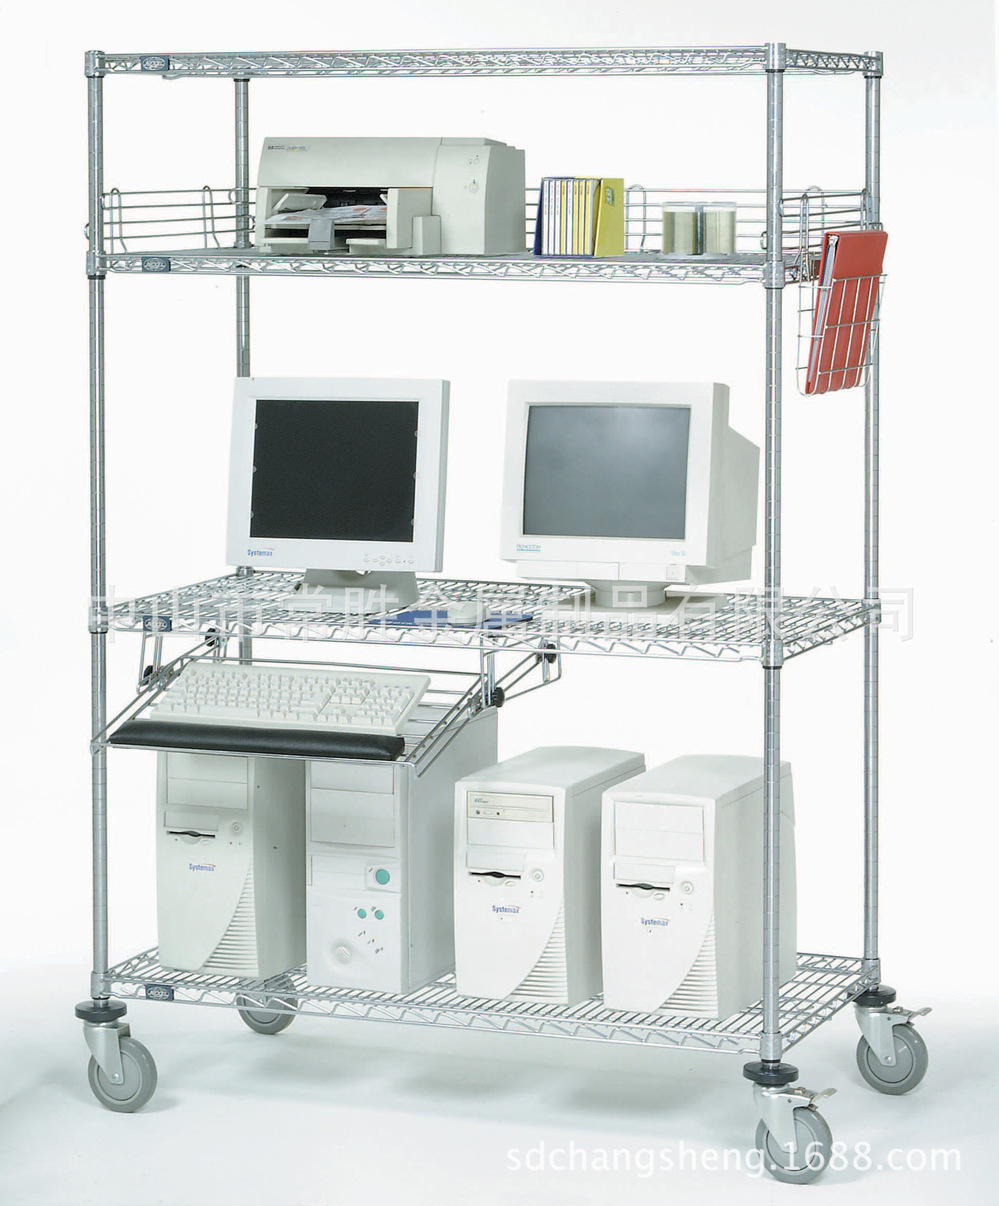 Anti Static Tables : Removable anti static table desk job can be customized